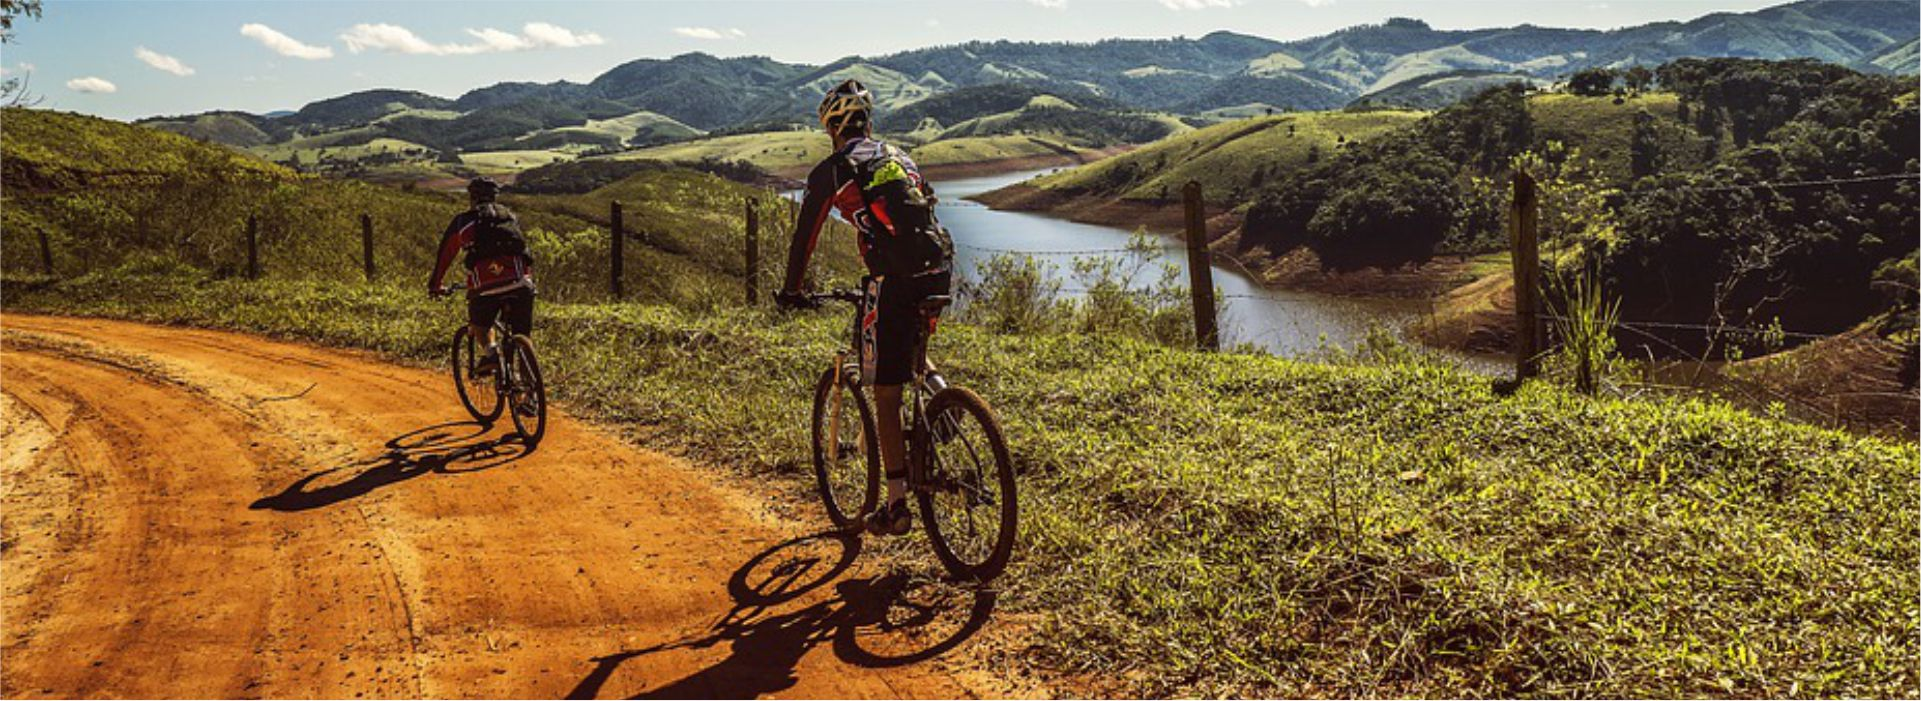 mountain-bike-rio-trilha-